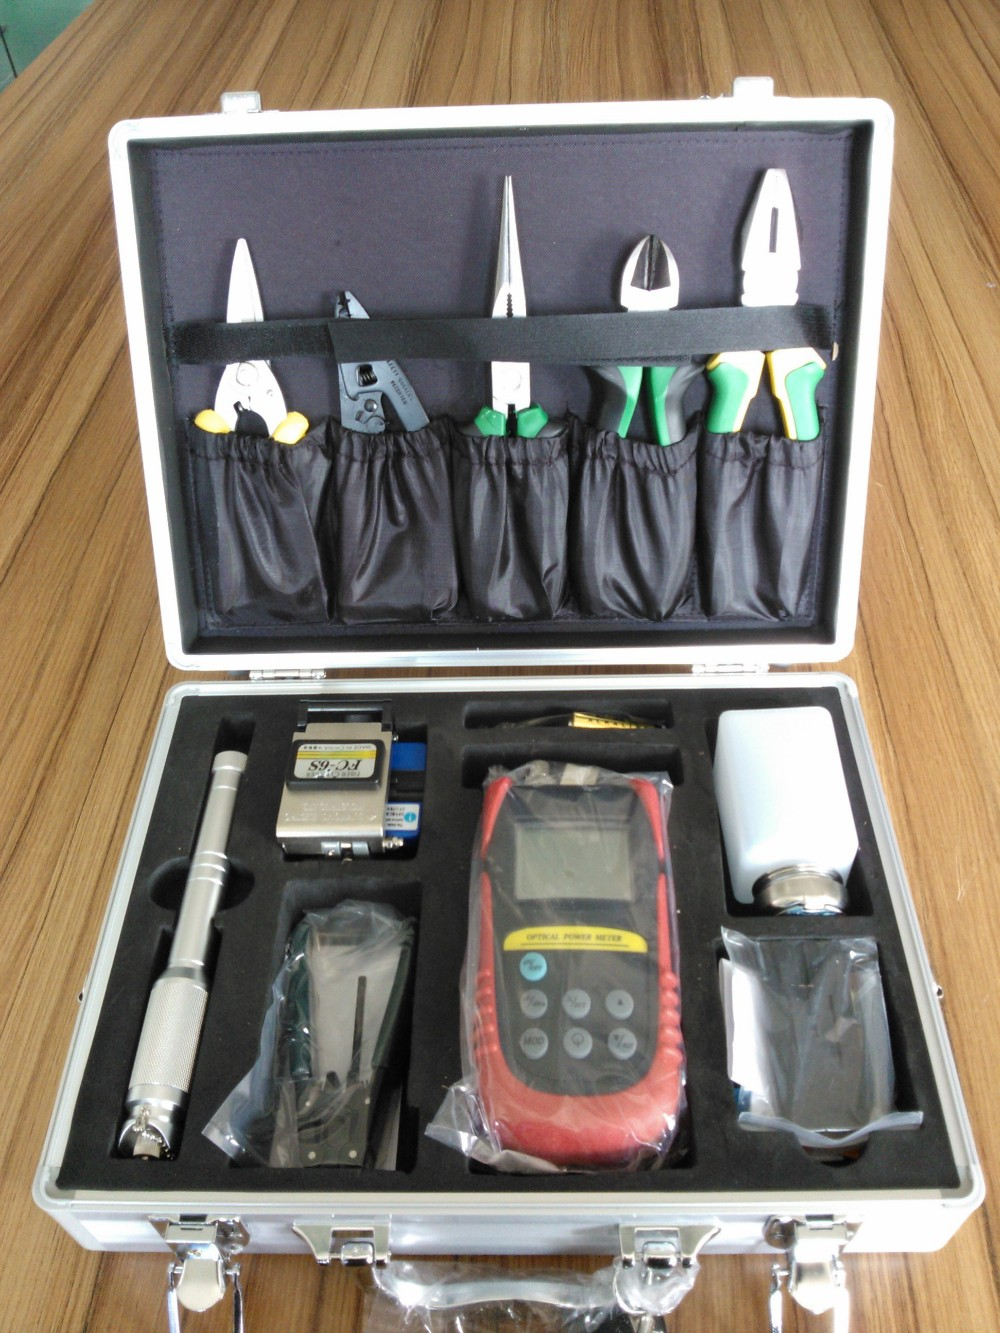 Fiber Optical Engineering Tool Kit Optical Power Meter Visual Fault Locator Strippers Fiber Cleaver Accessories